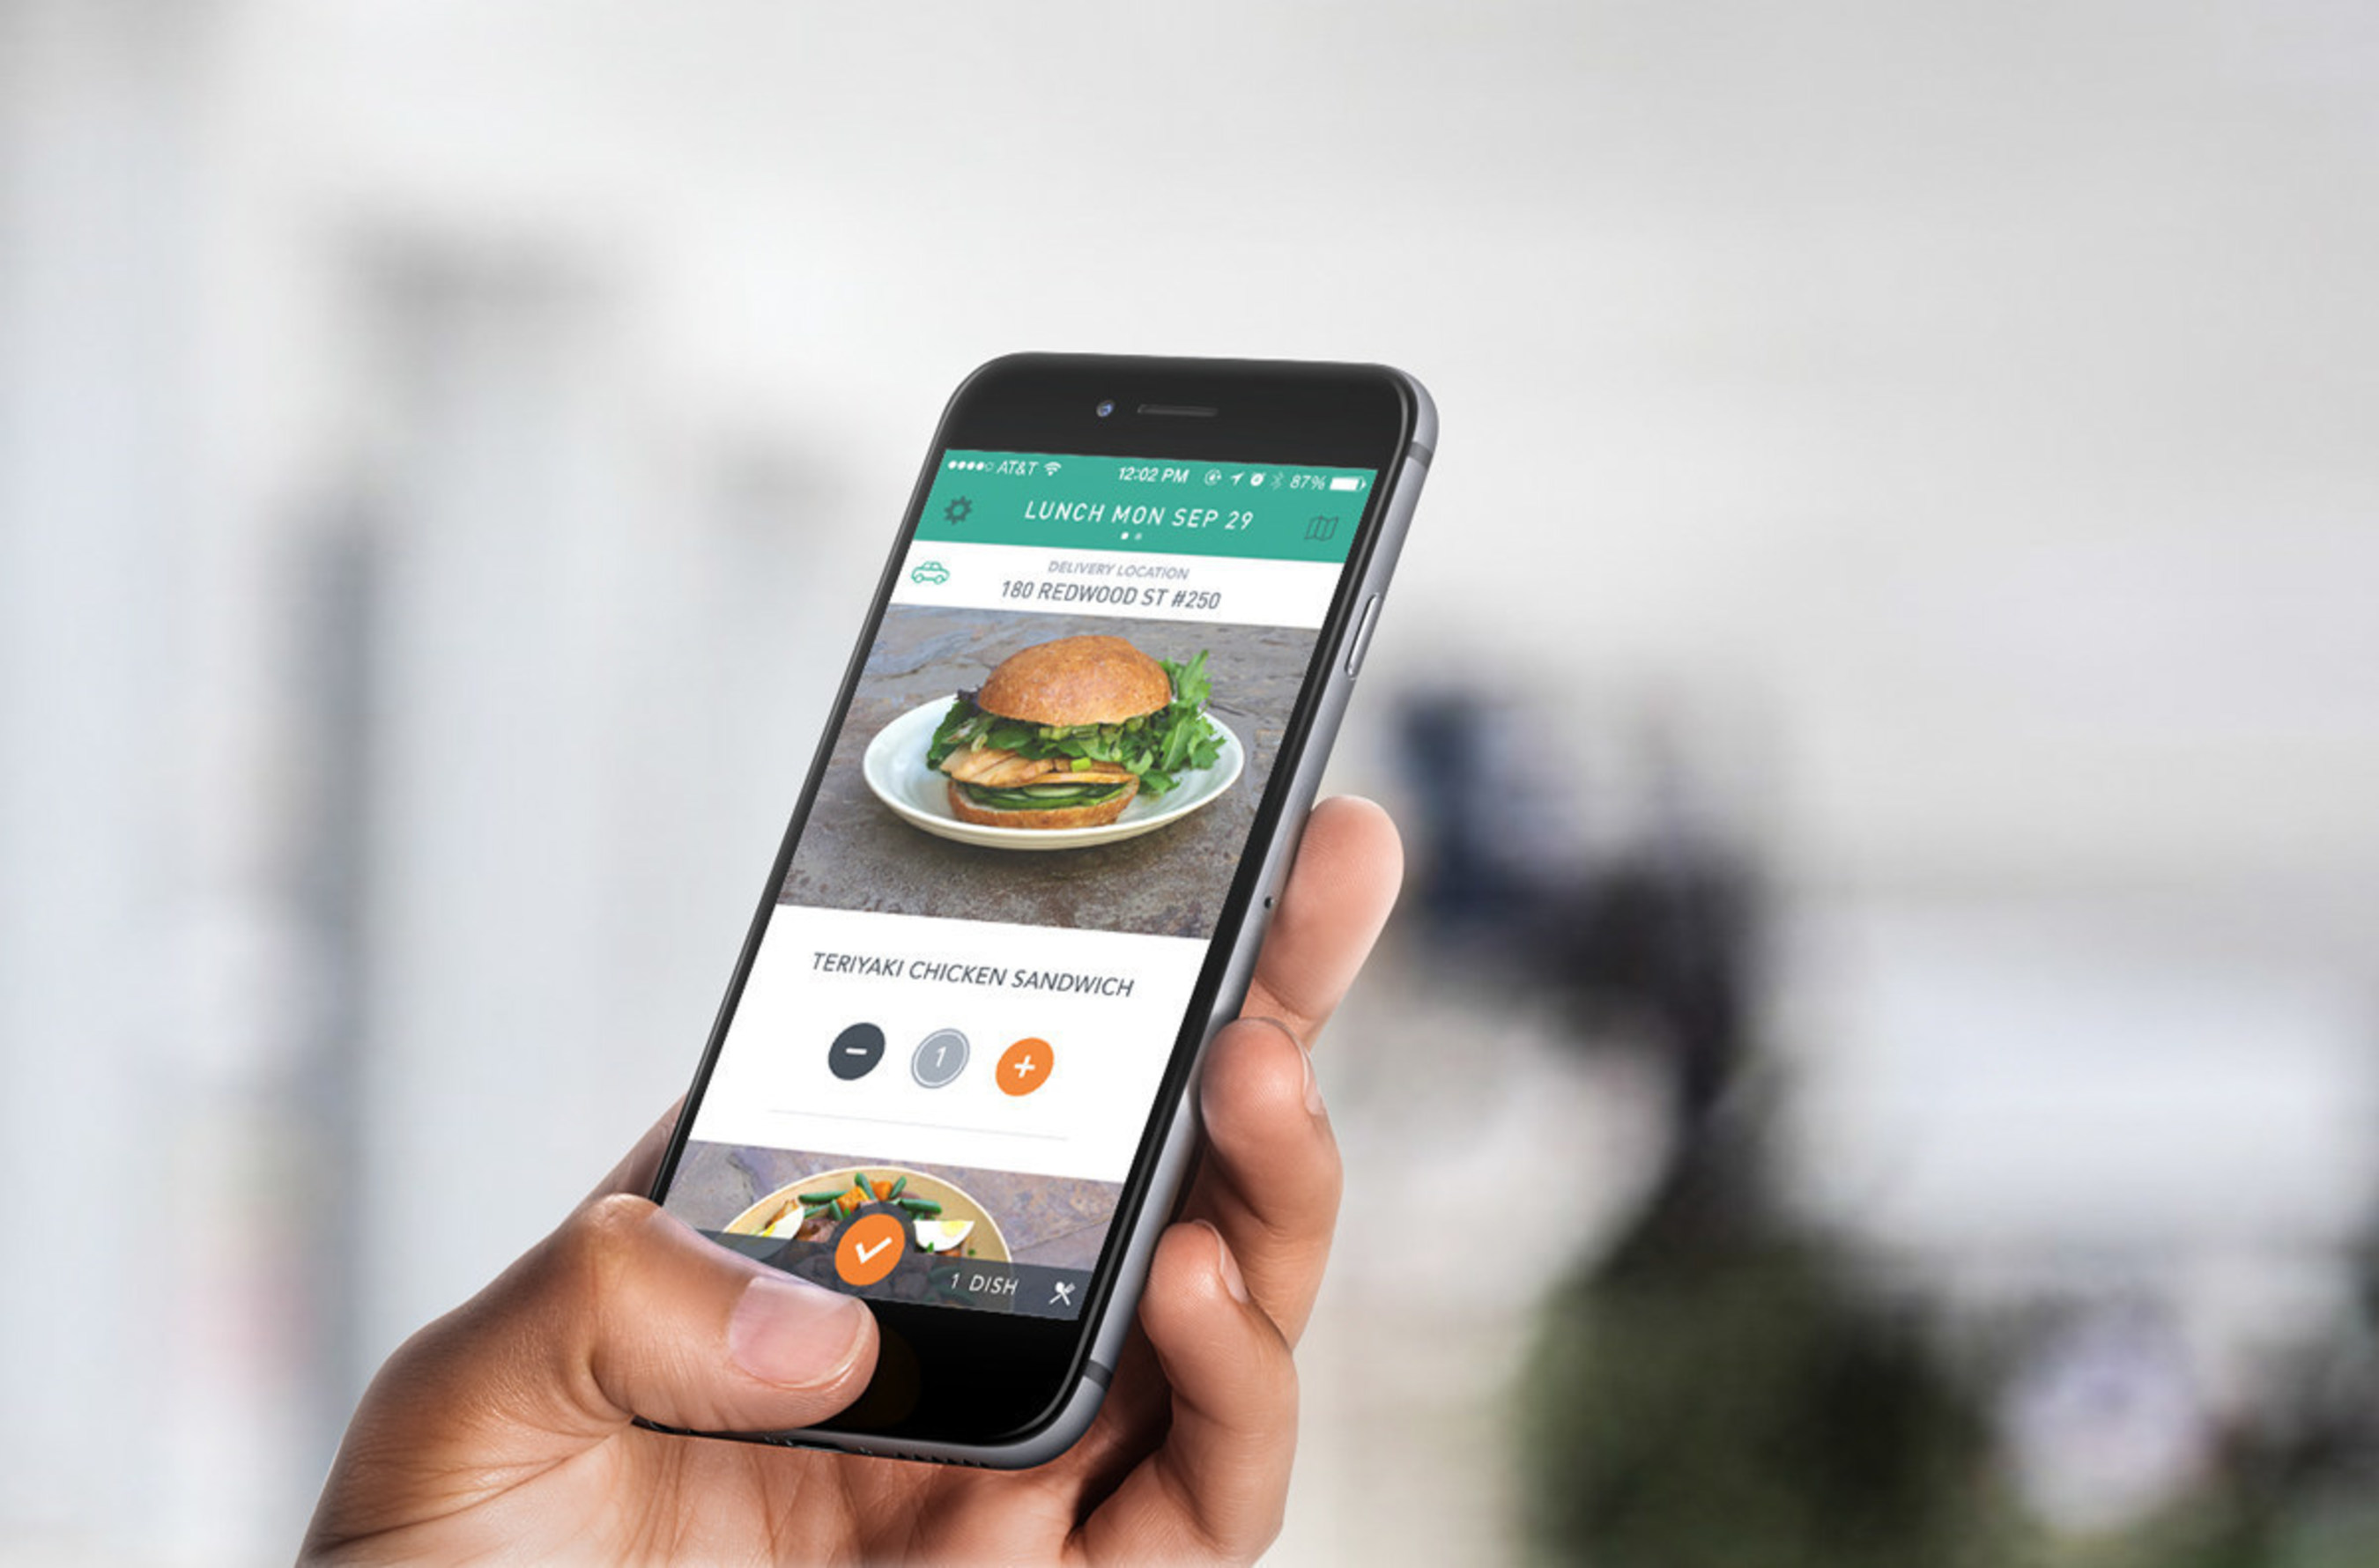 With just a few taps on the Sprig iPhone or Android app, choose from three healthy, ready to eat meal options to be delivered in 15 minutes.